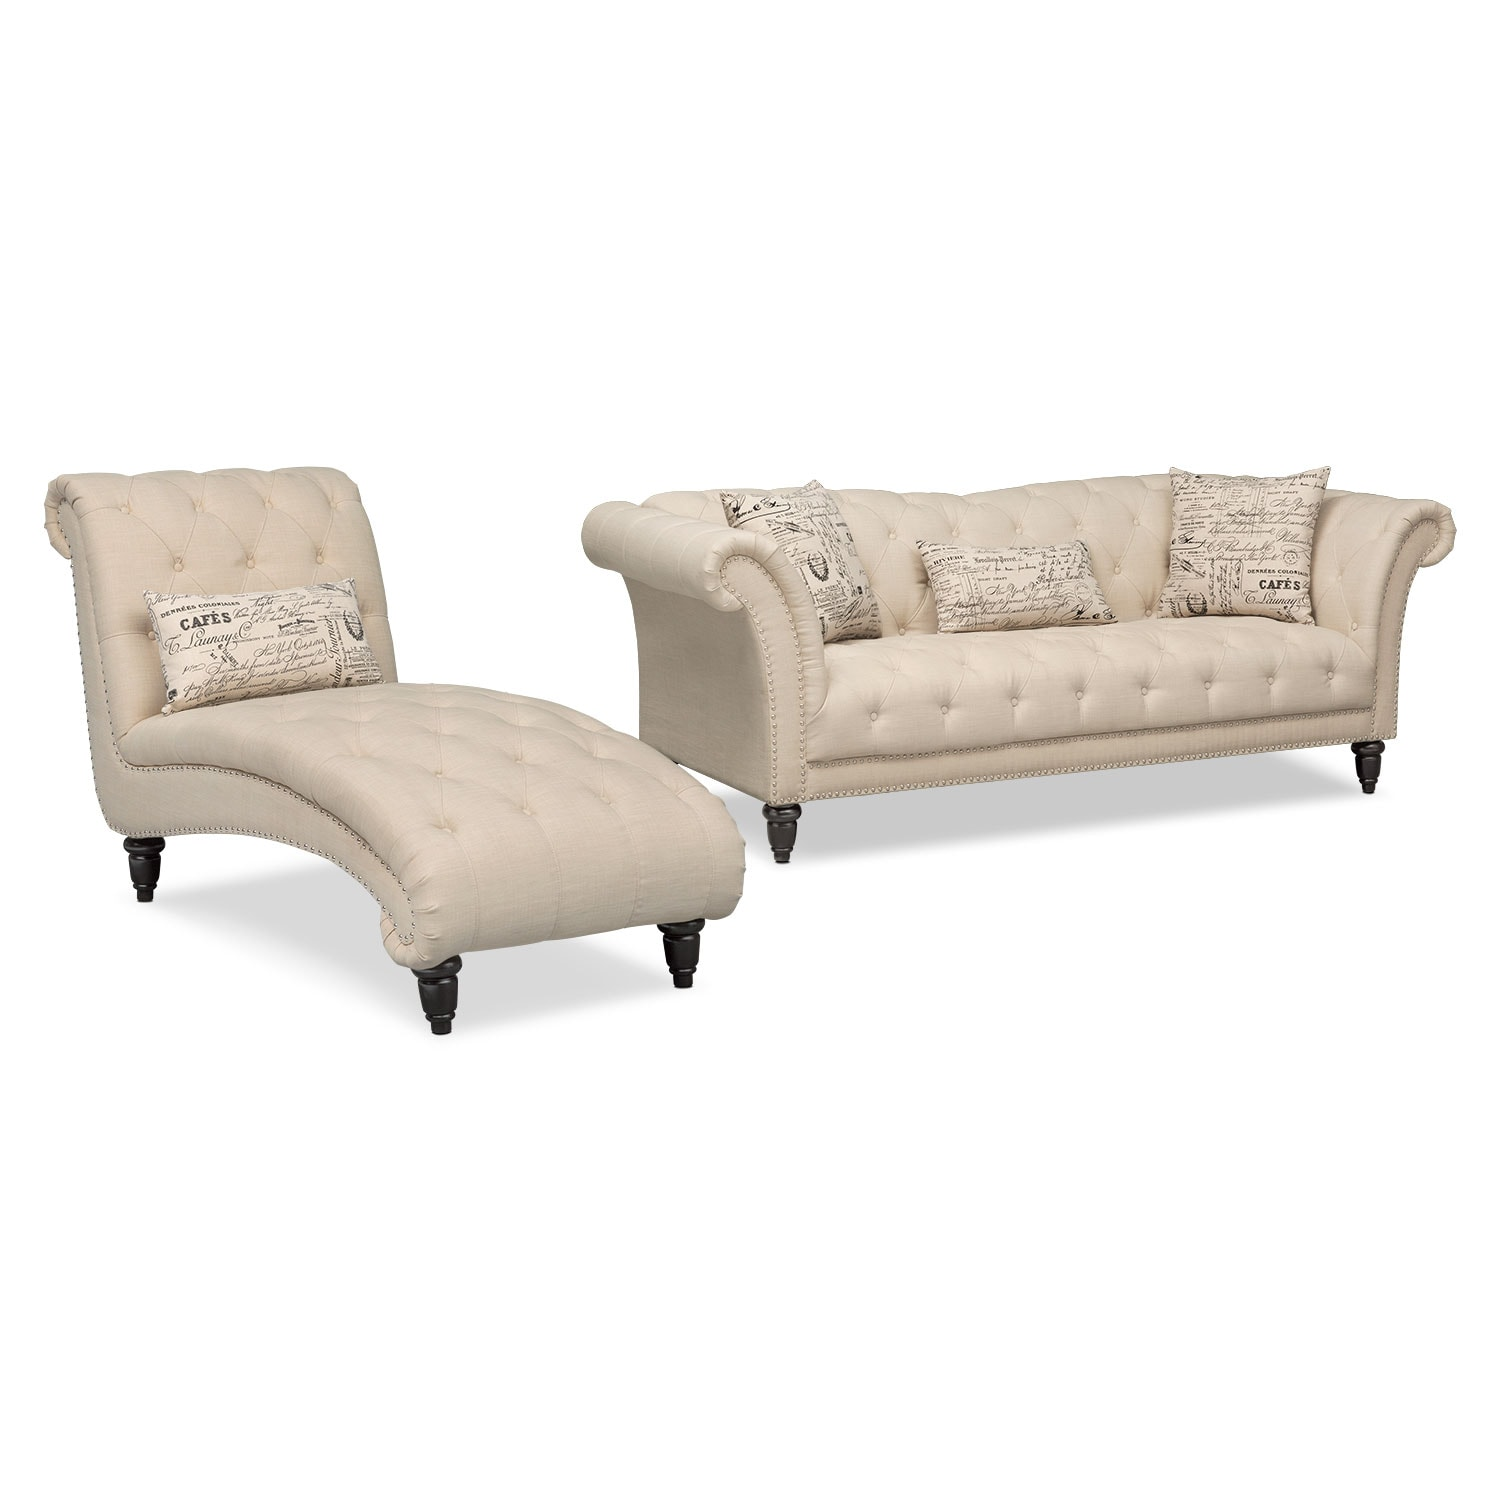 Marisol Sofa and Chaise - Beige